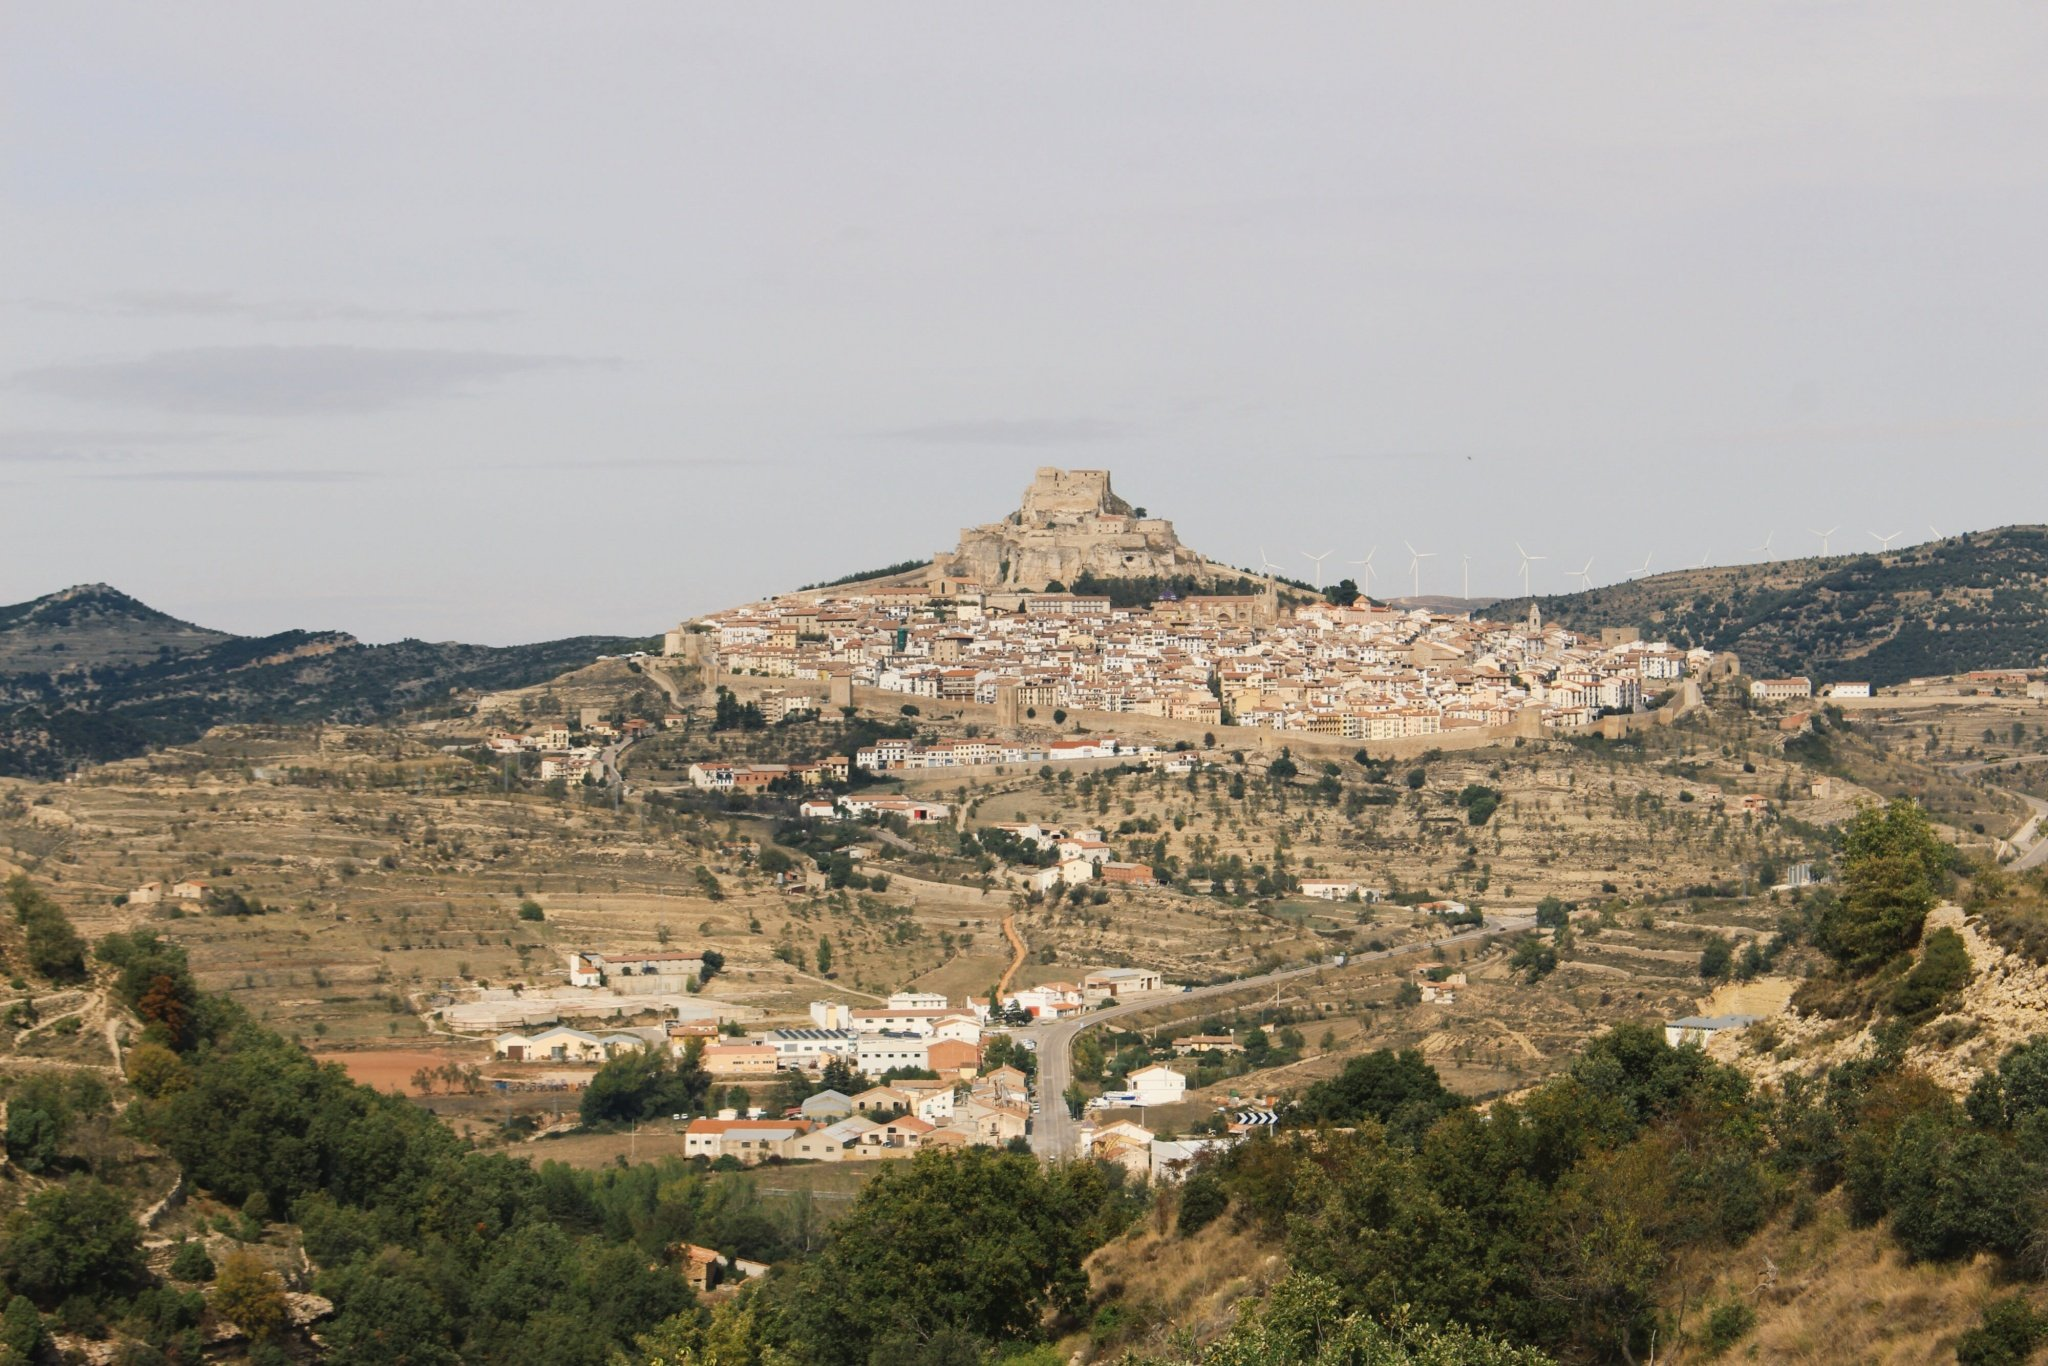 Visiting fairytale town and castle of Morella in the province of Castellon Spain